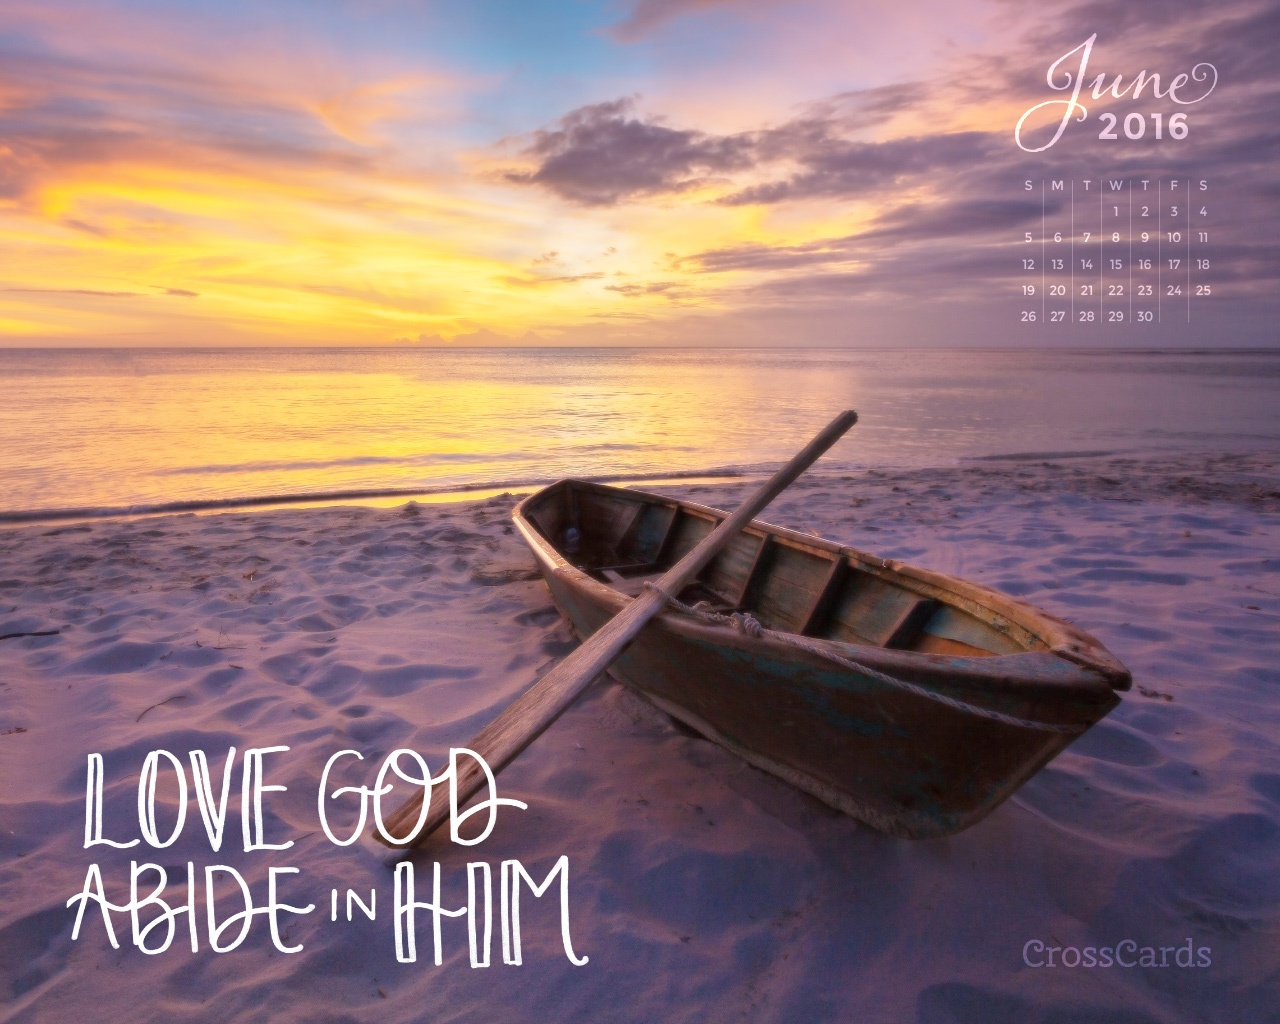 June 2016 love god abide in him desktop calendar free - Crosscards christian wallpaper ...